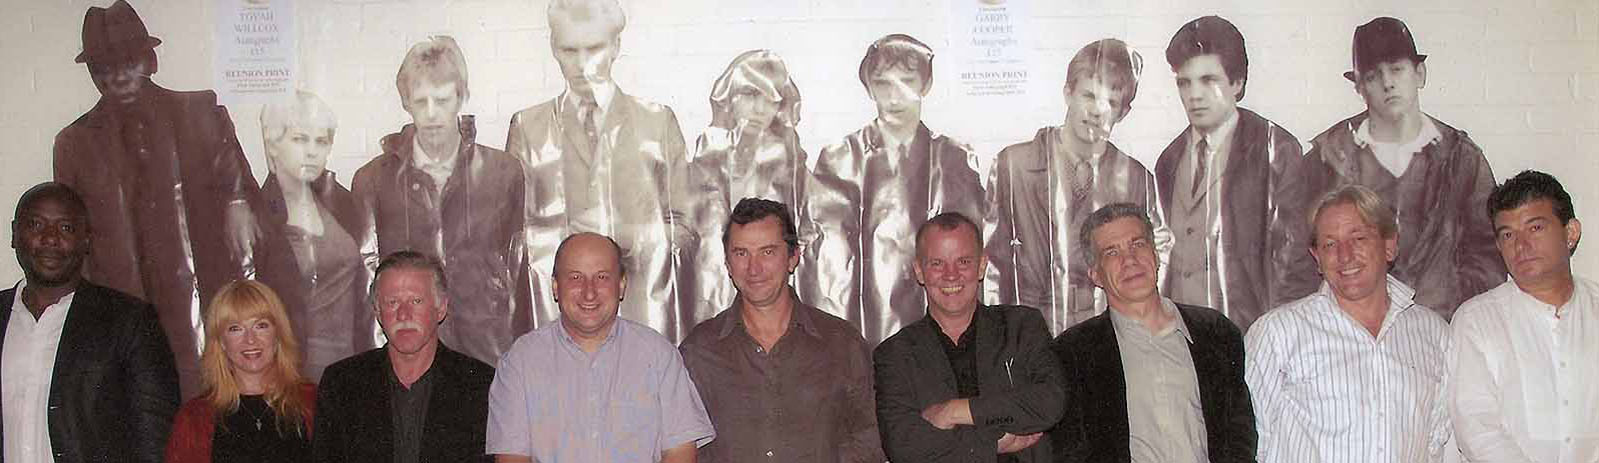 Roy with the Main Cast of Quadrophenia at Reunion